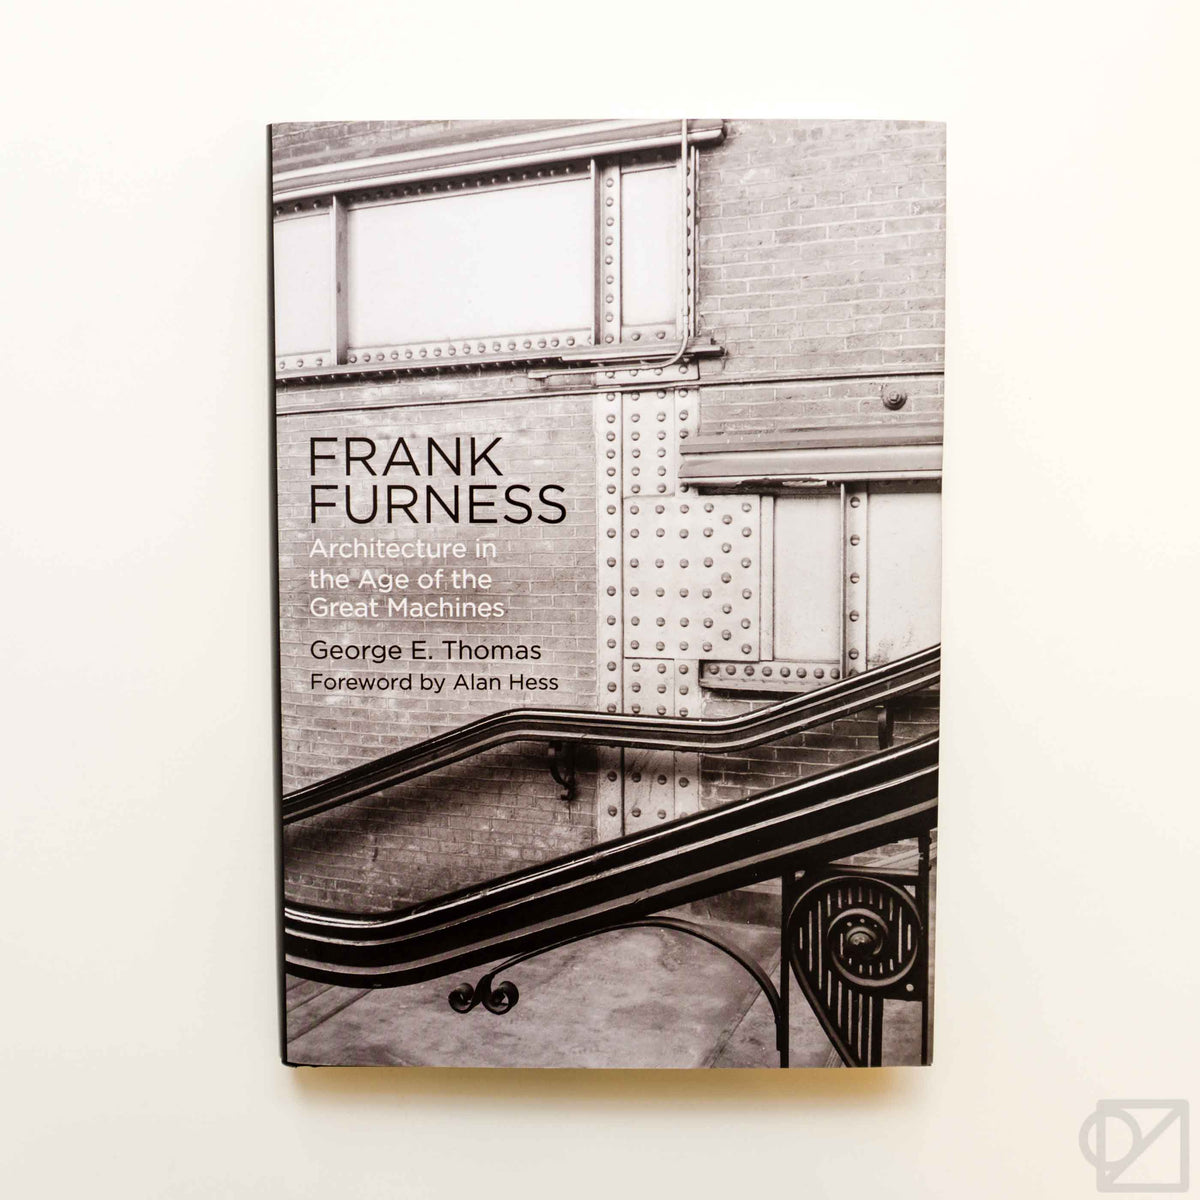 Frank Furness: Architecture In The Age of Great Machines